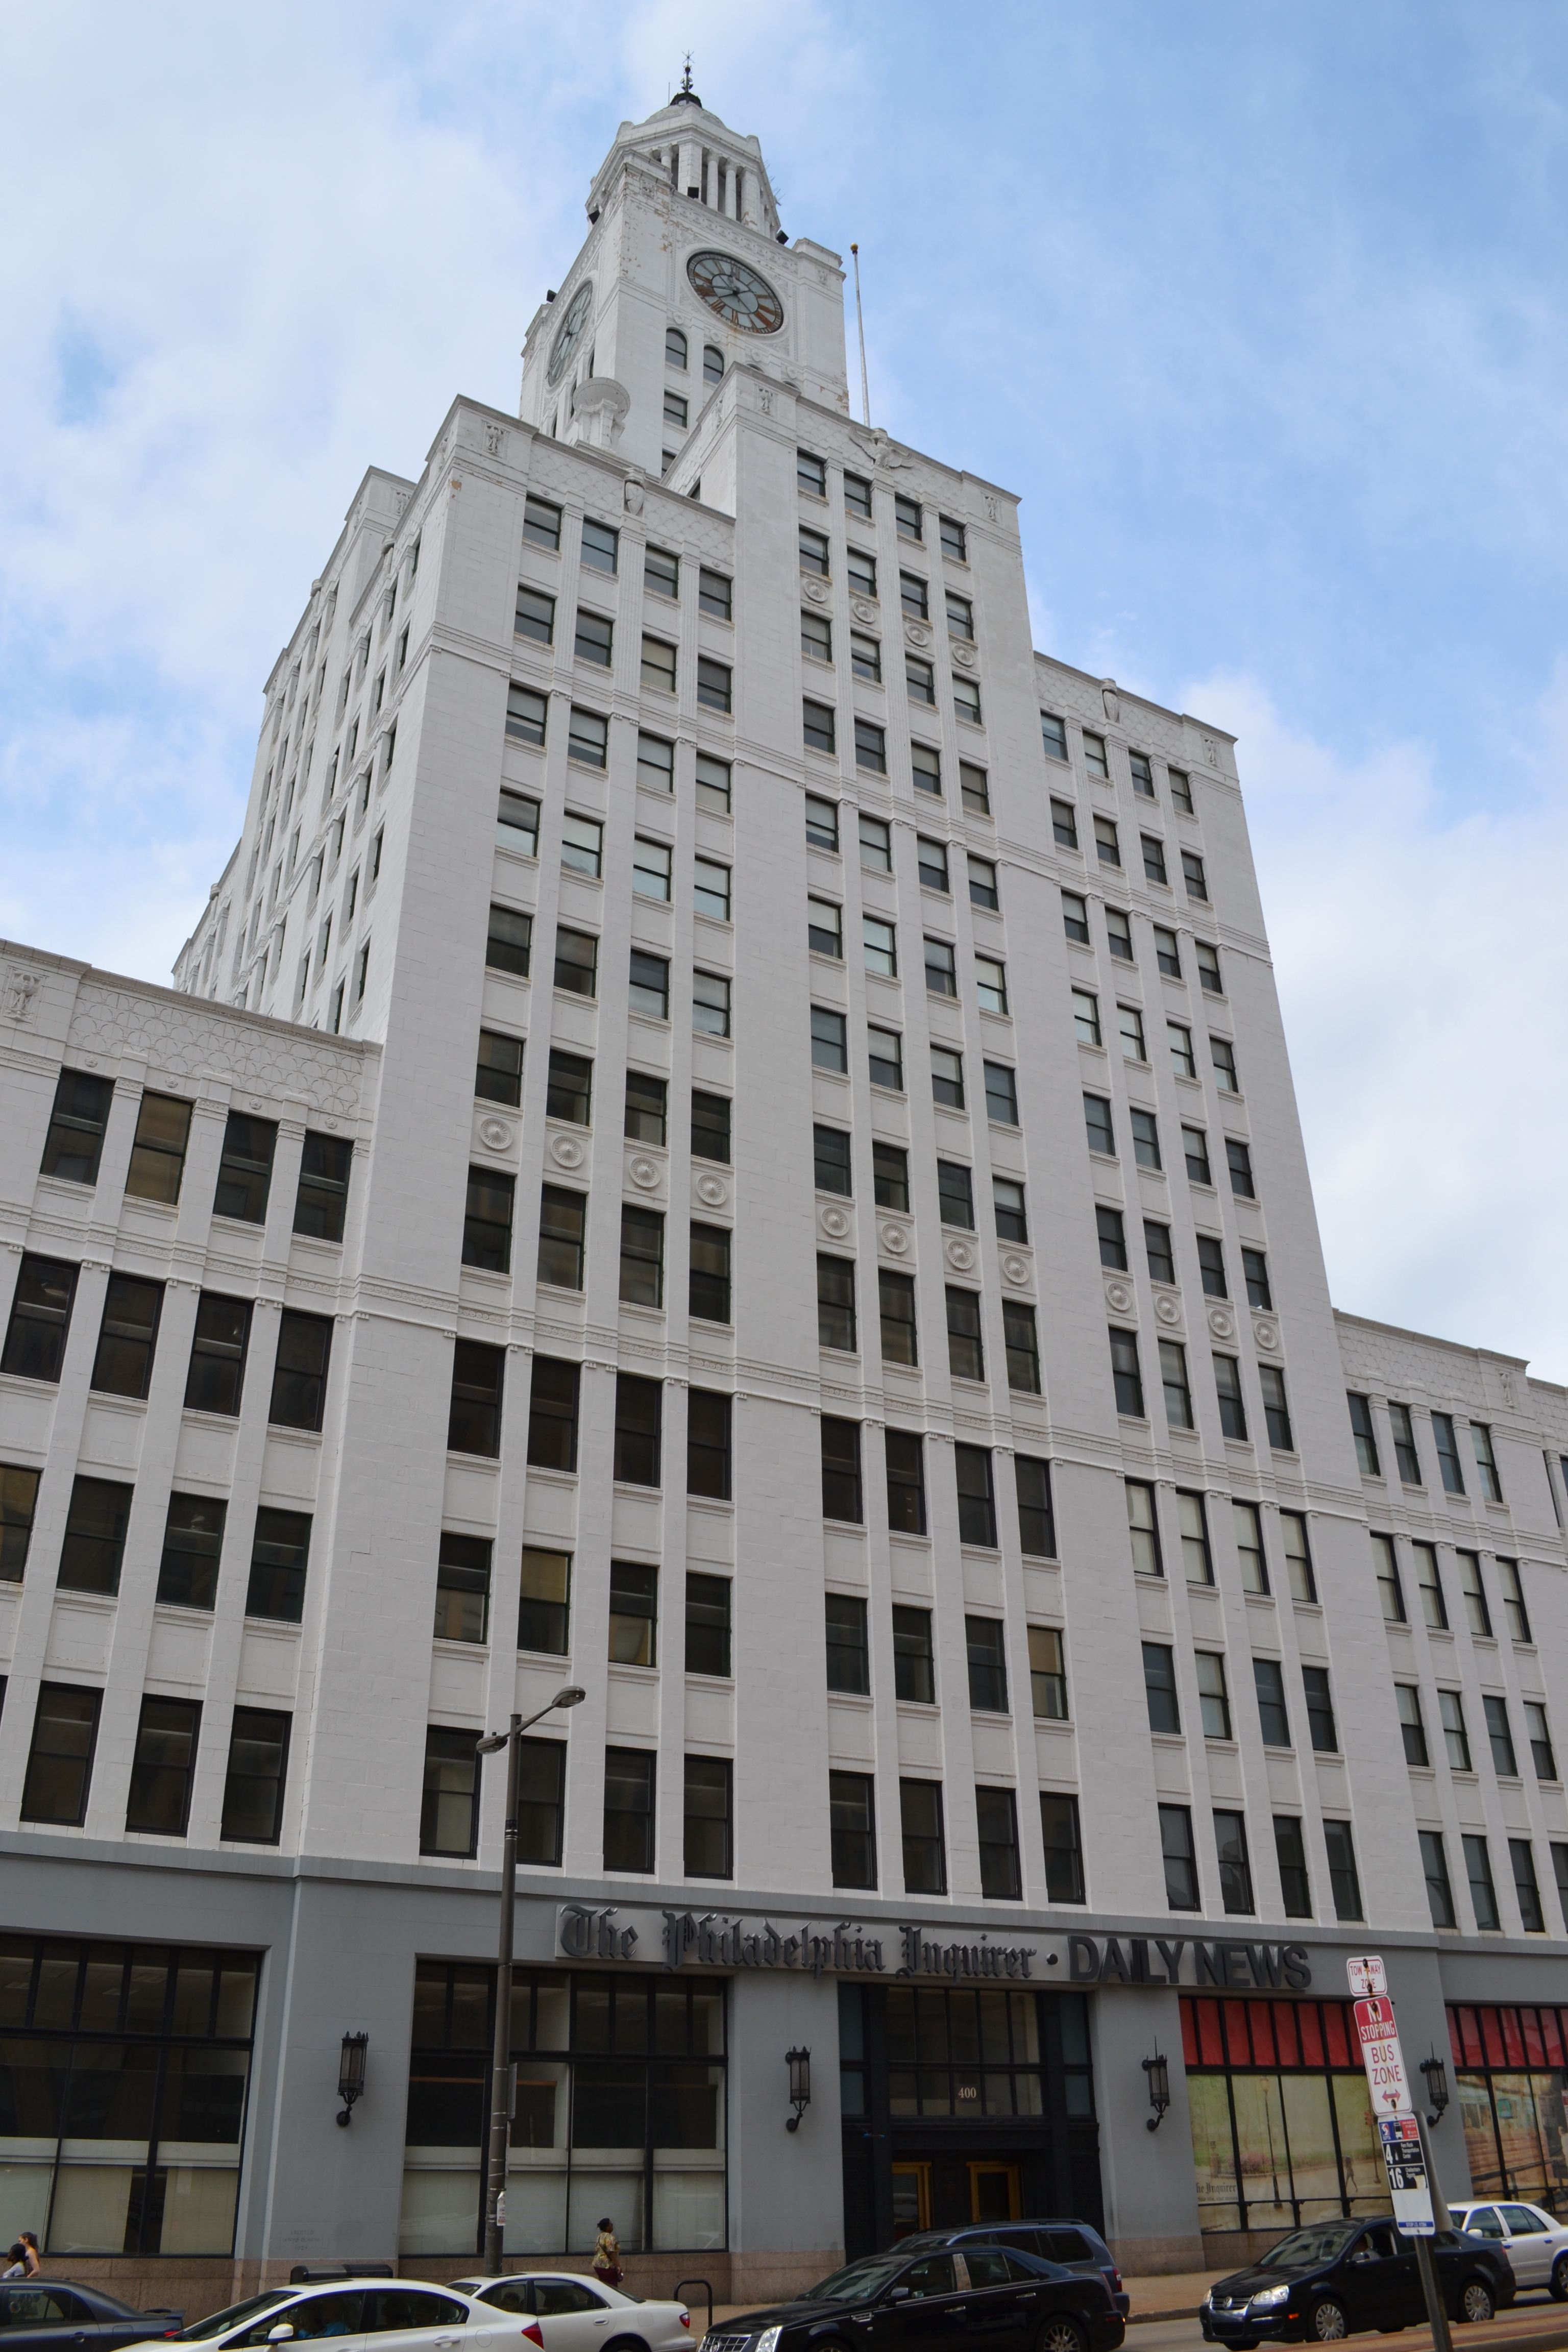 The former Inquirer building sits just west of the bridge at 400 N. Broad Street